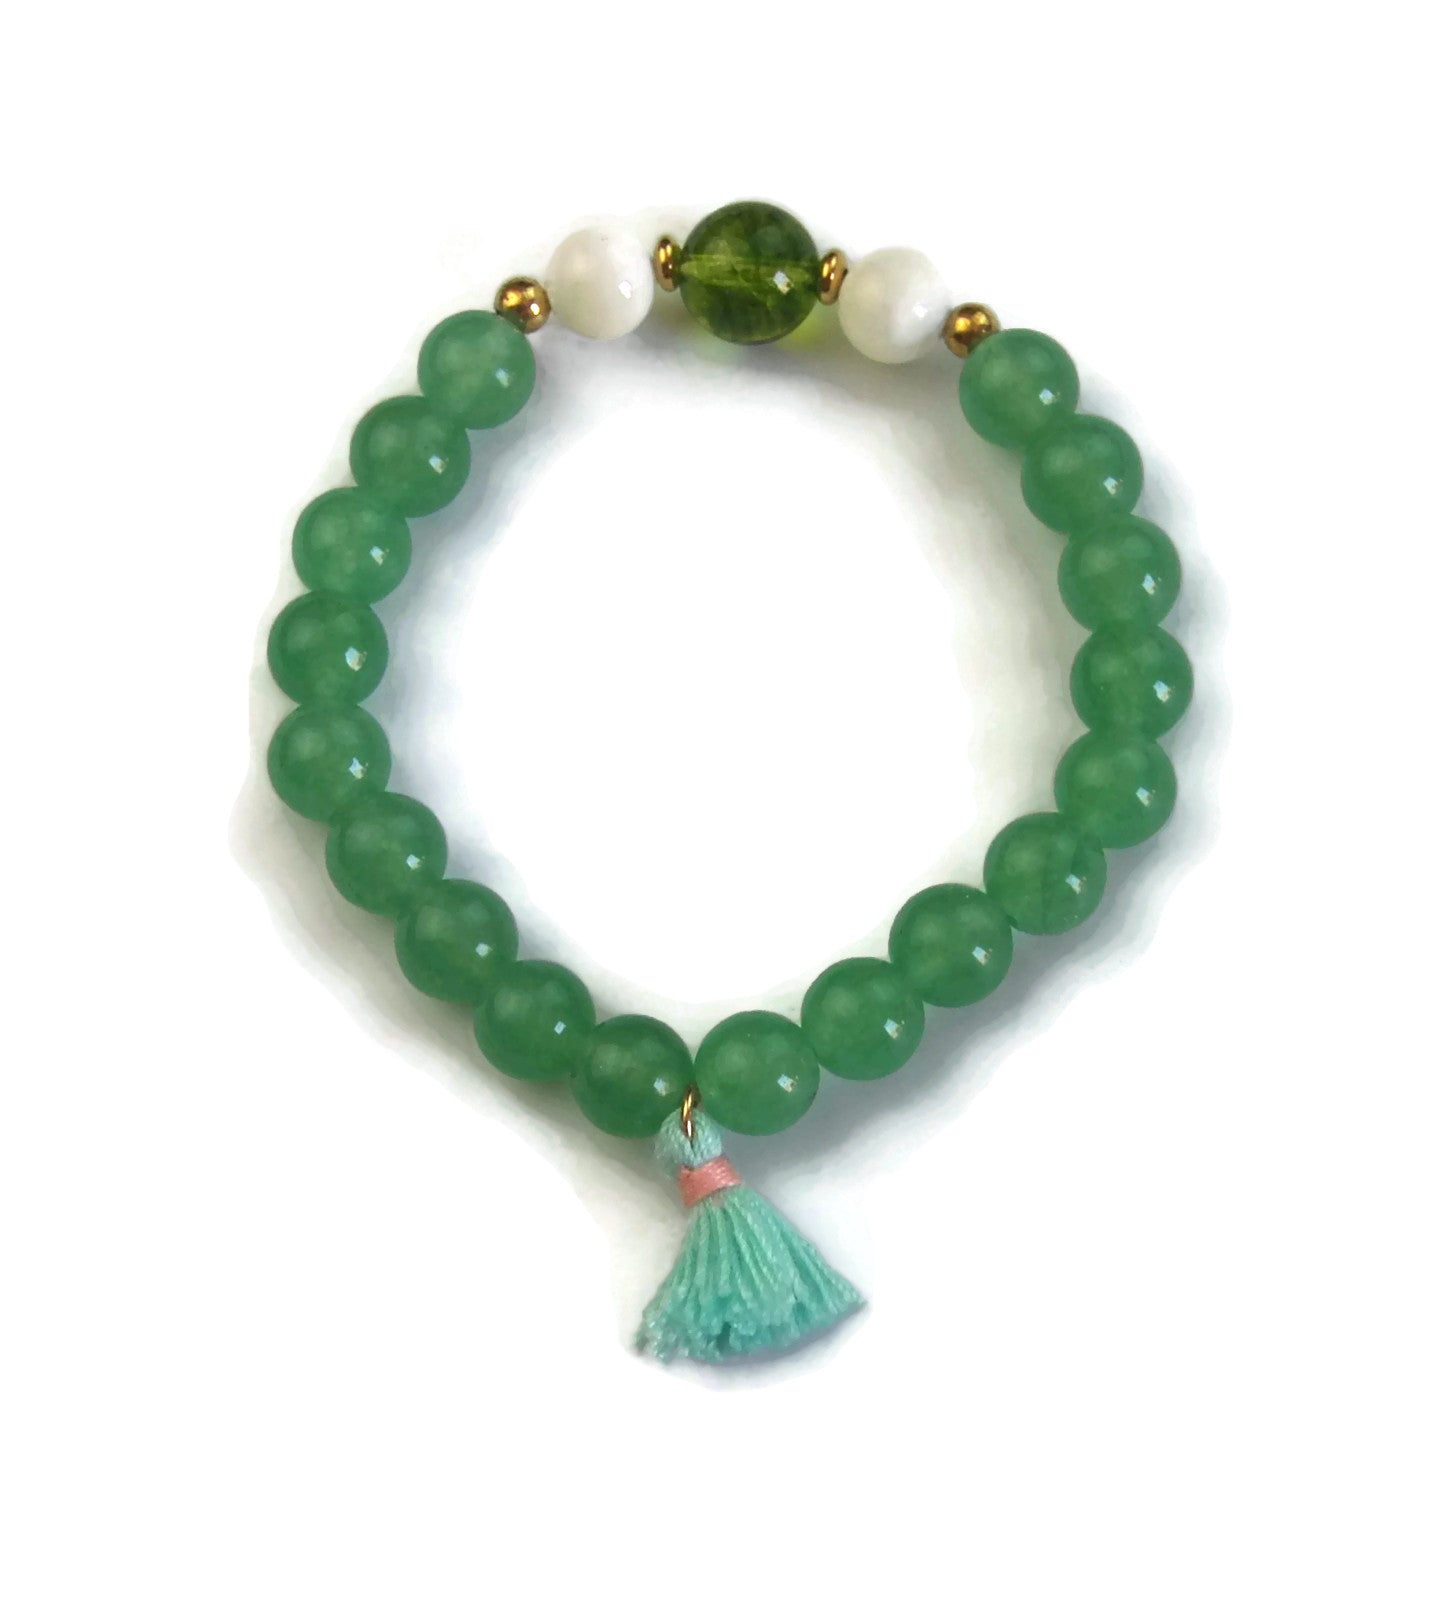 Beach Collection 8mm Green Aventurine, Pearl Shell and Peridot with 24K Gold Spacers and Tassel Stretch Bracelet Wrist Mala Heart Chakra